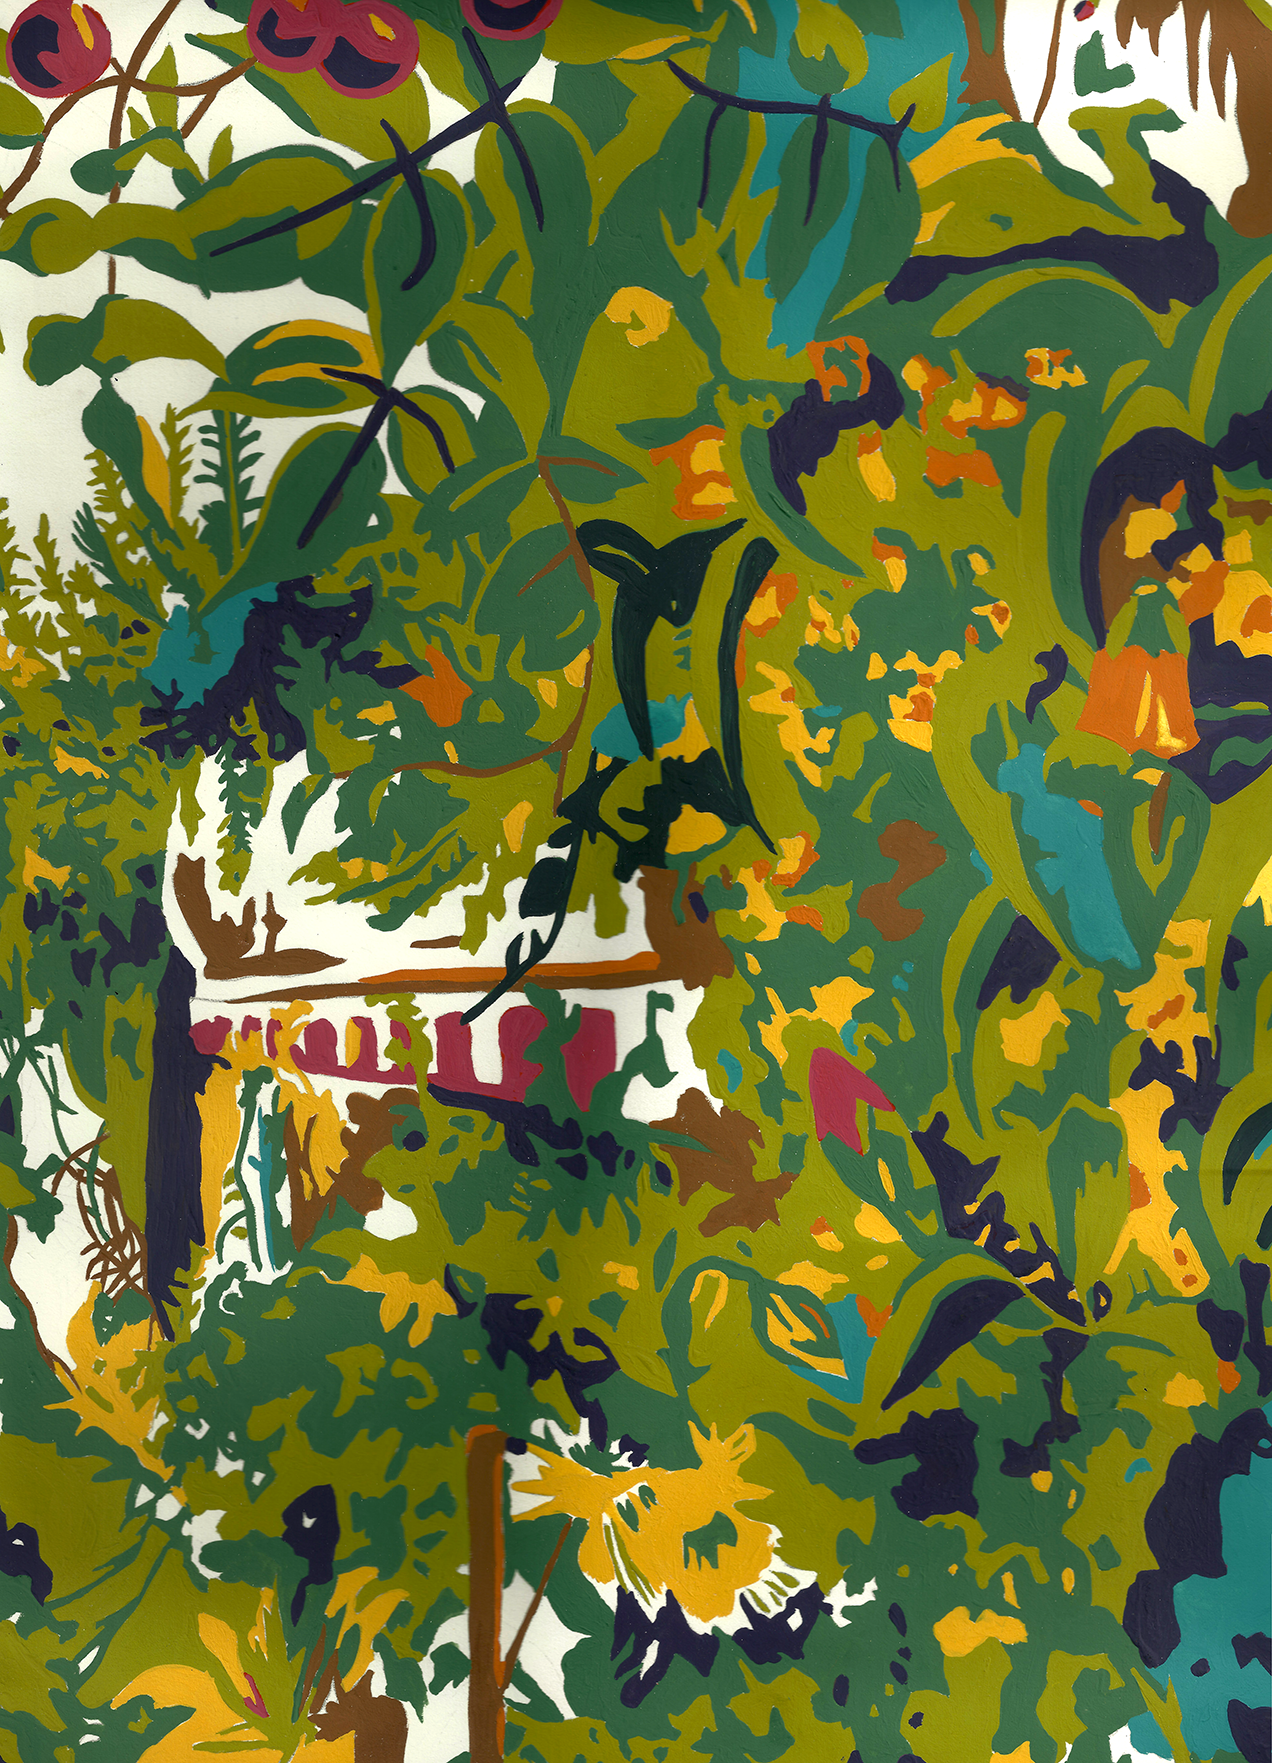 Wild Countryside No. 3 . 2016. 10-color separated design - Gouache on cold pressed paper.